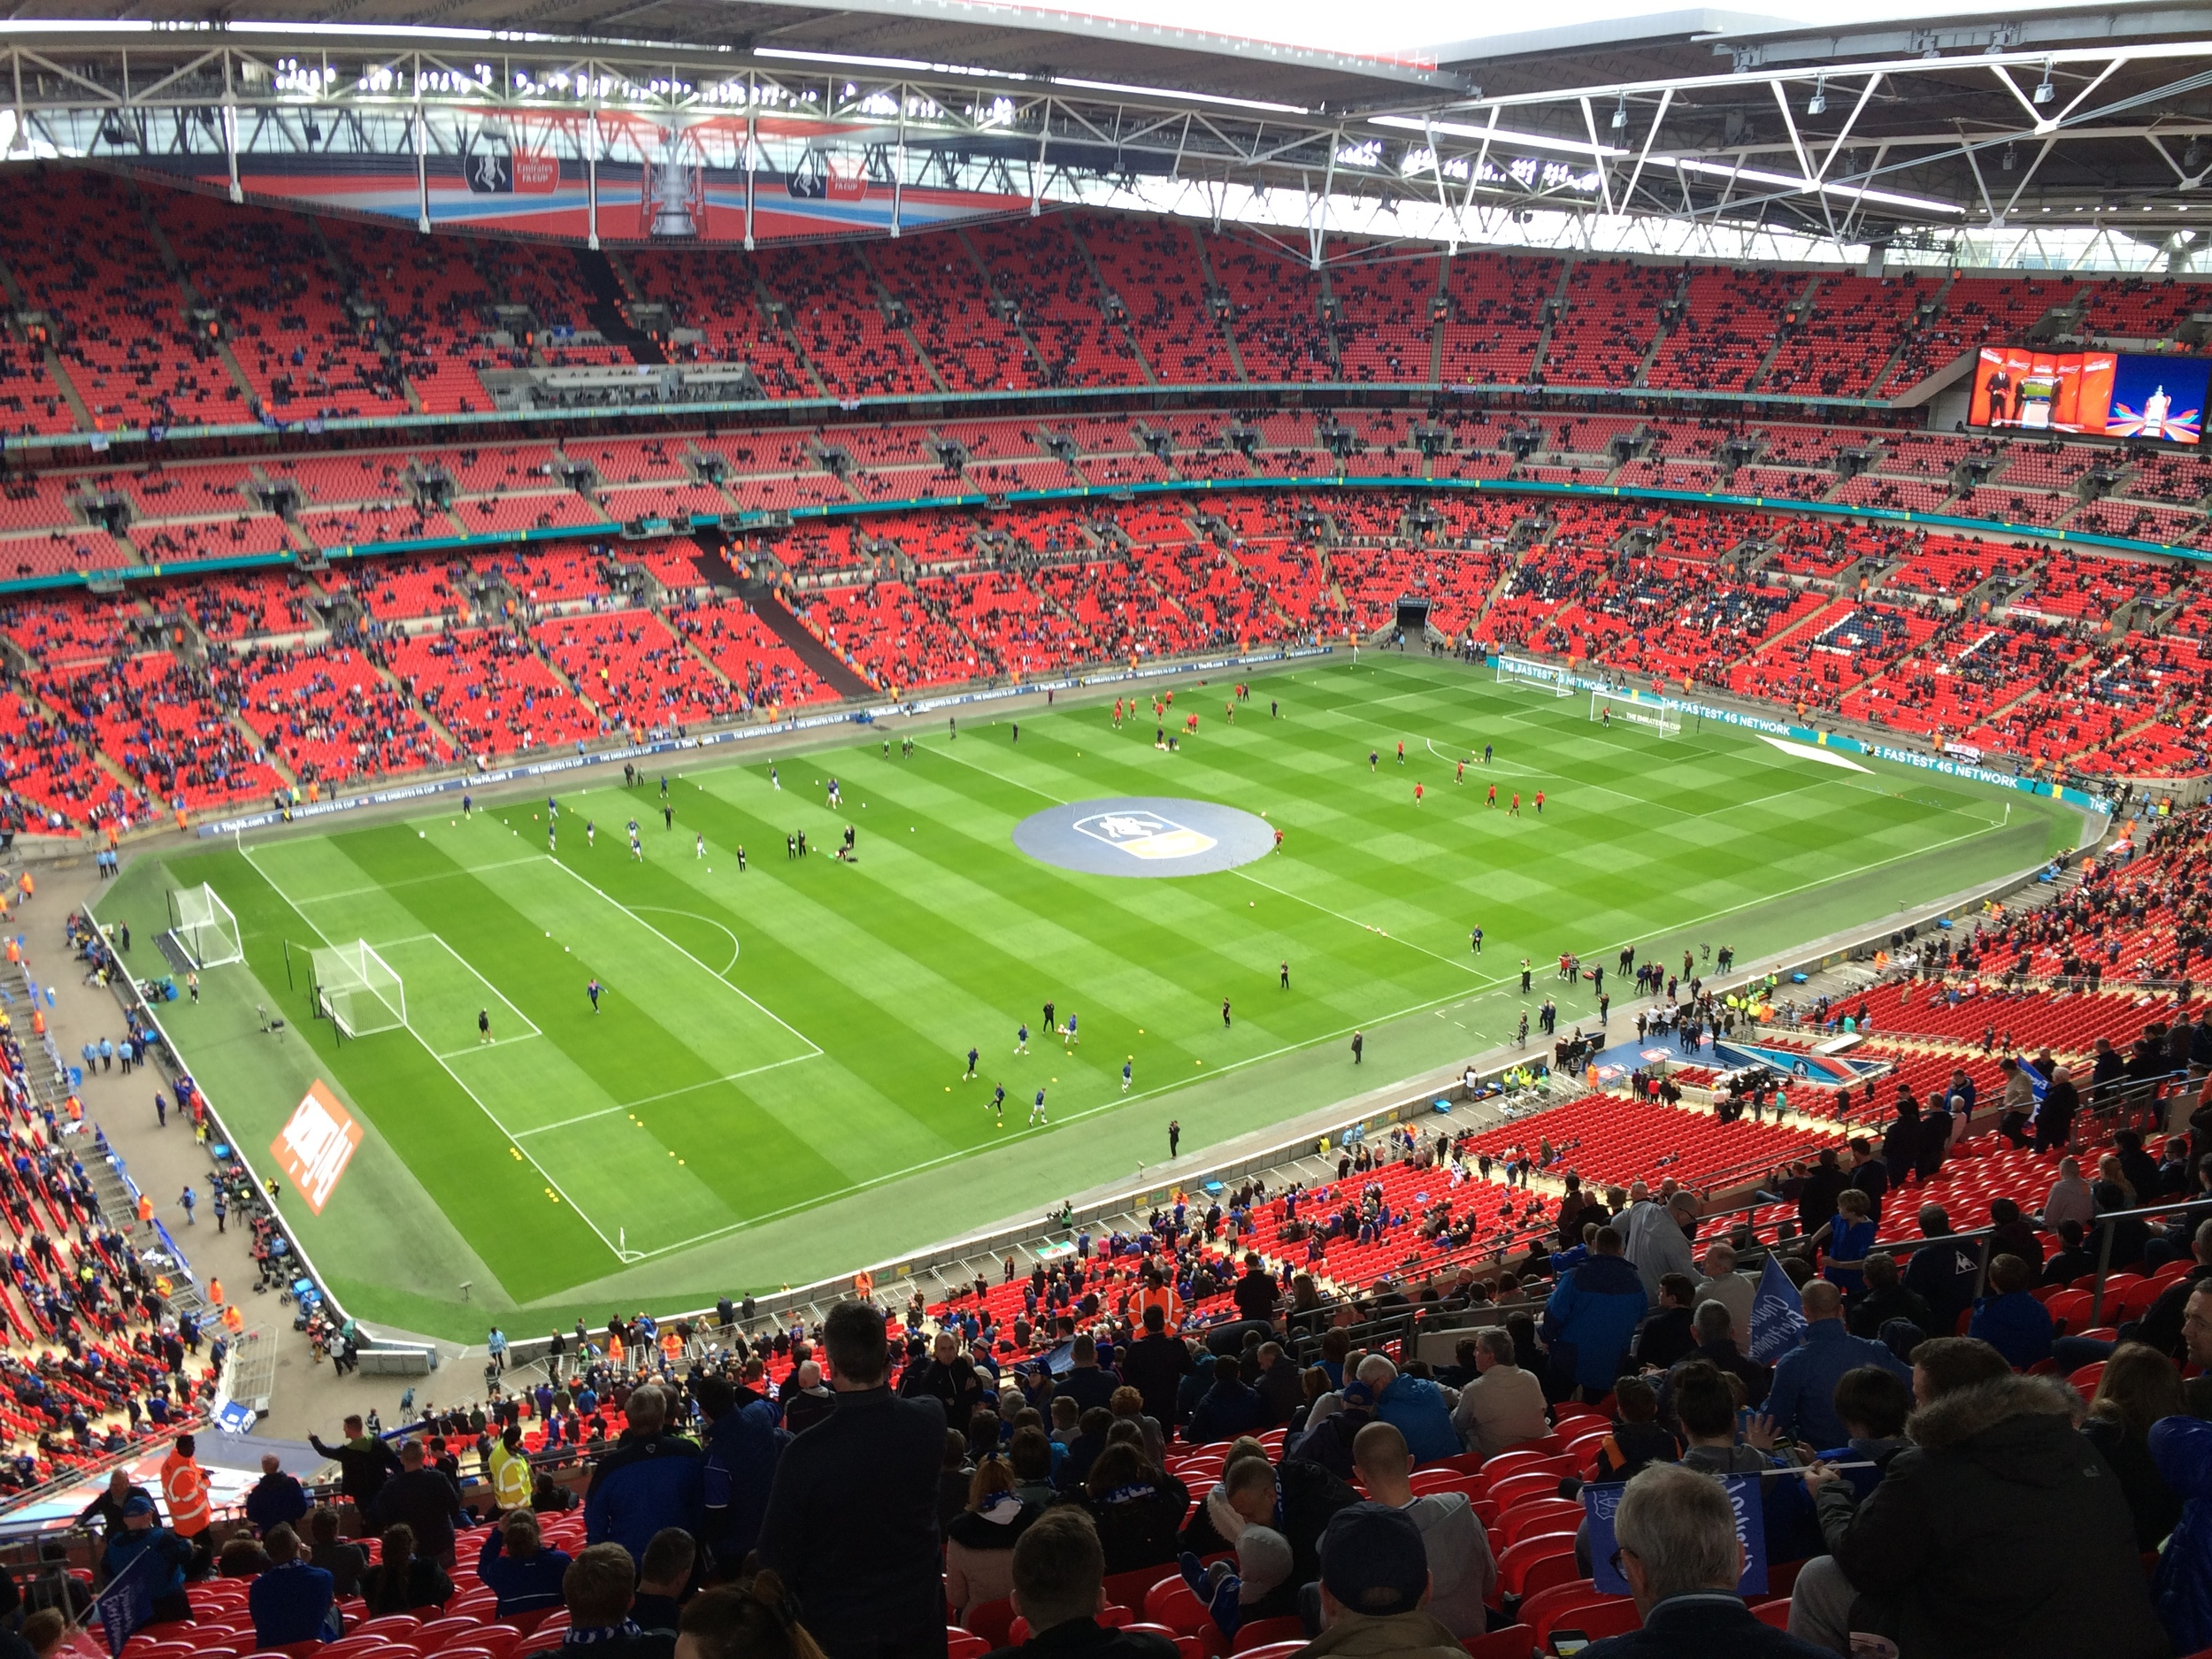 The view from our seats at Wembley Stadium.